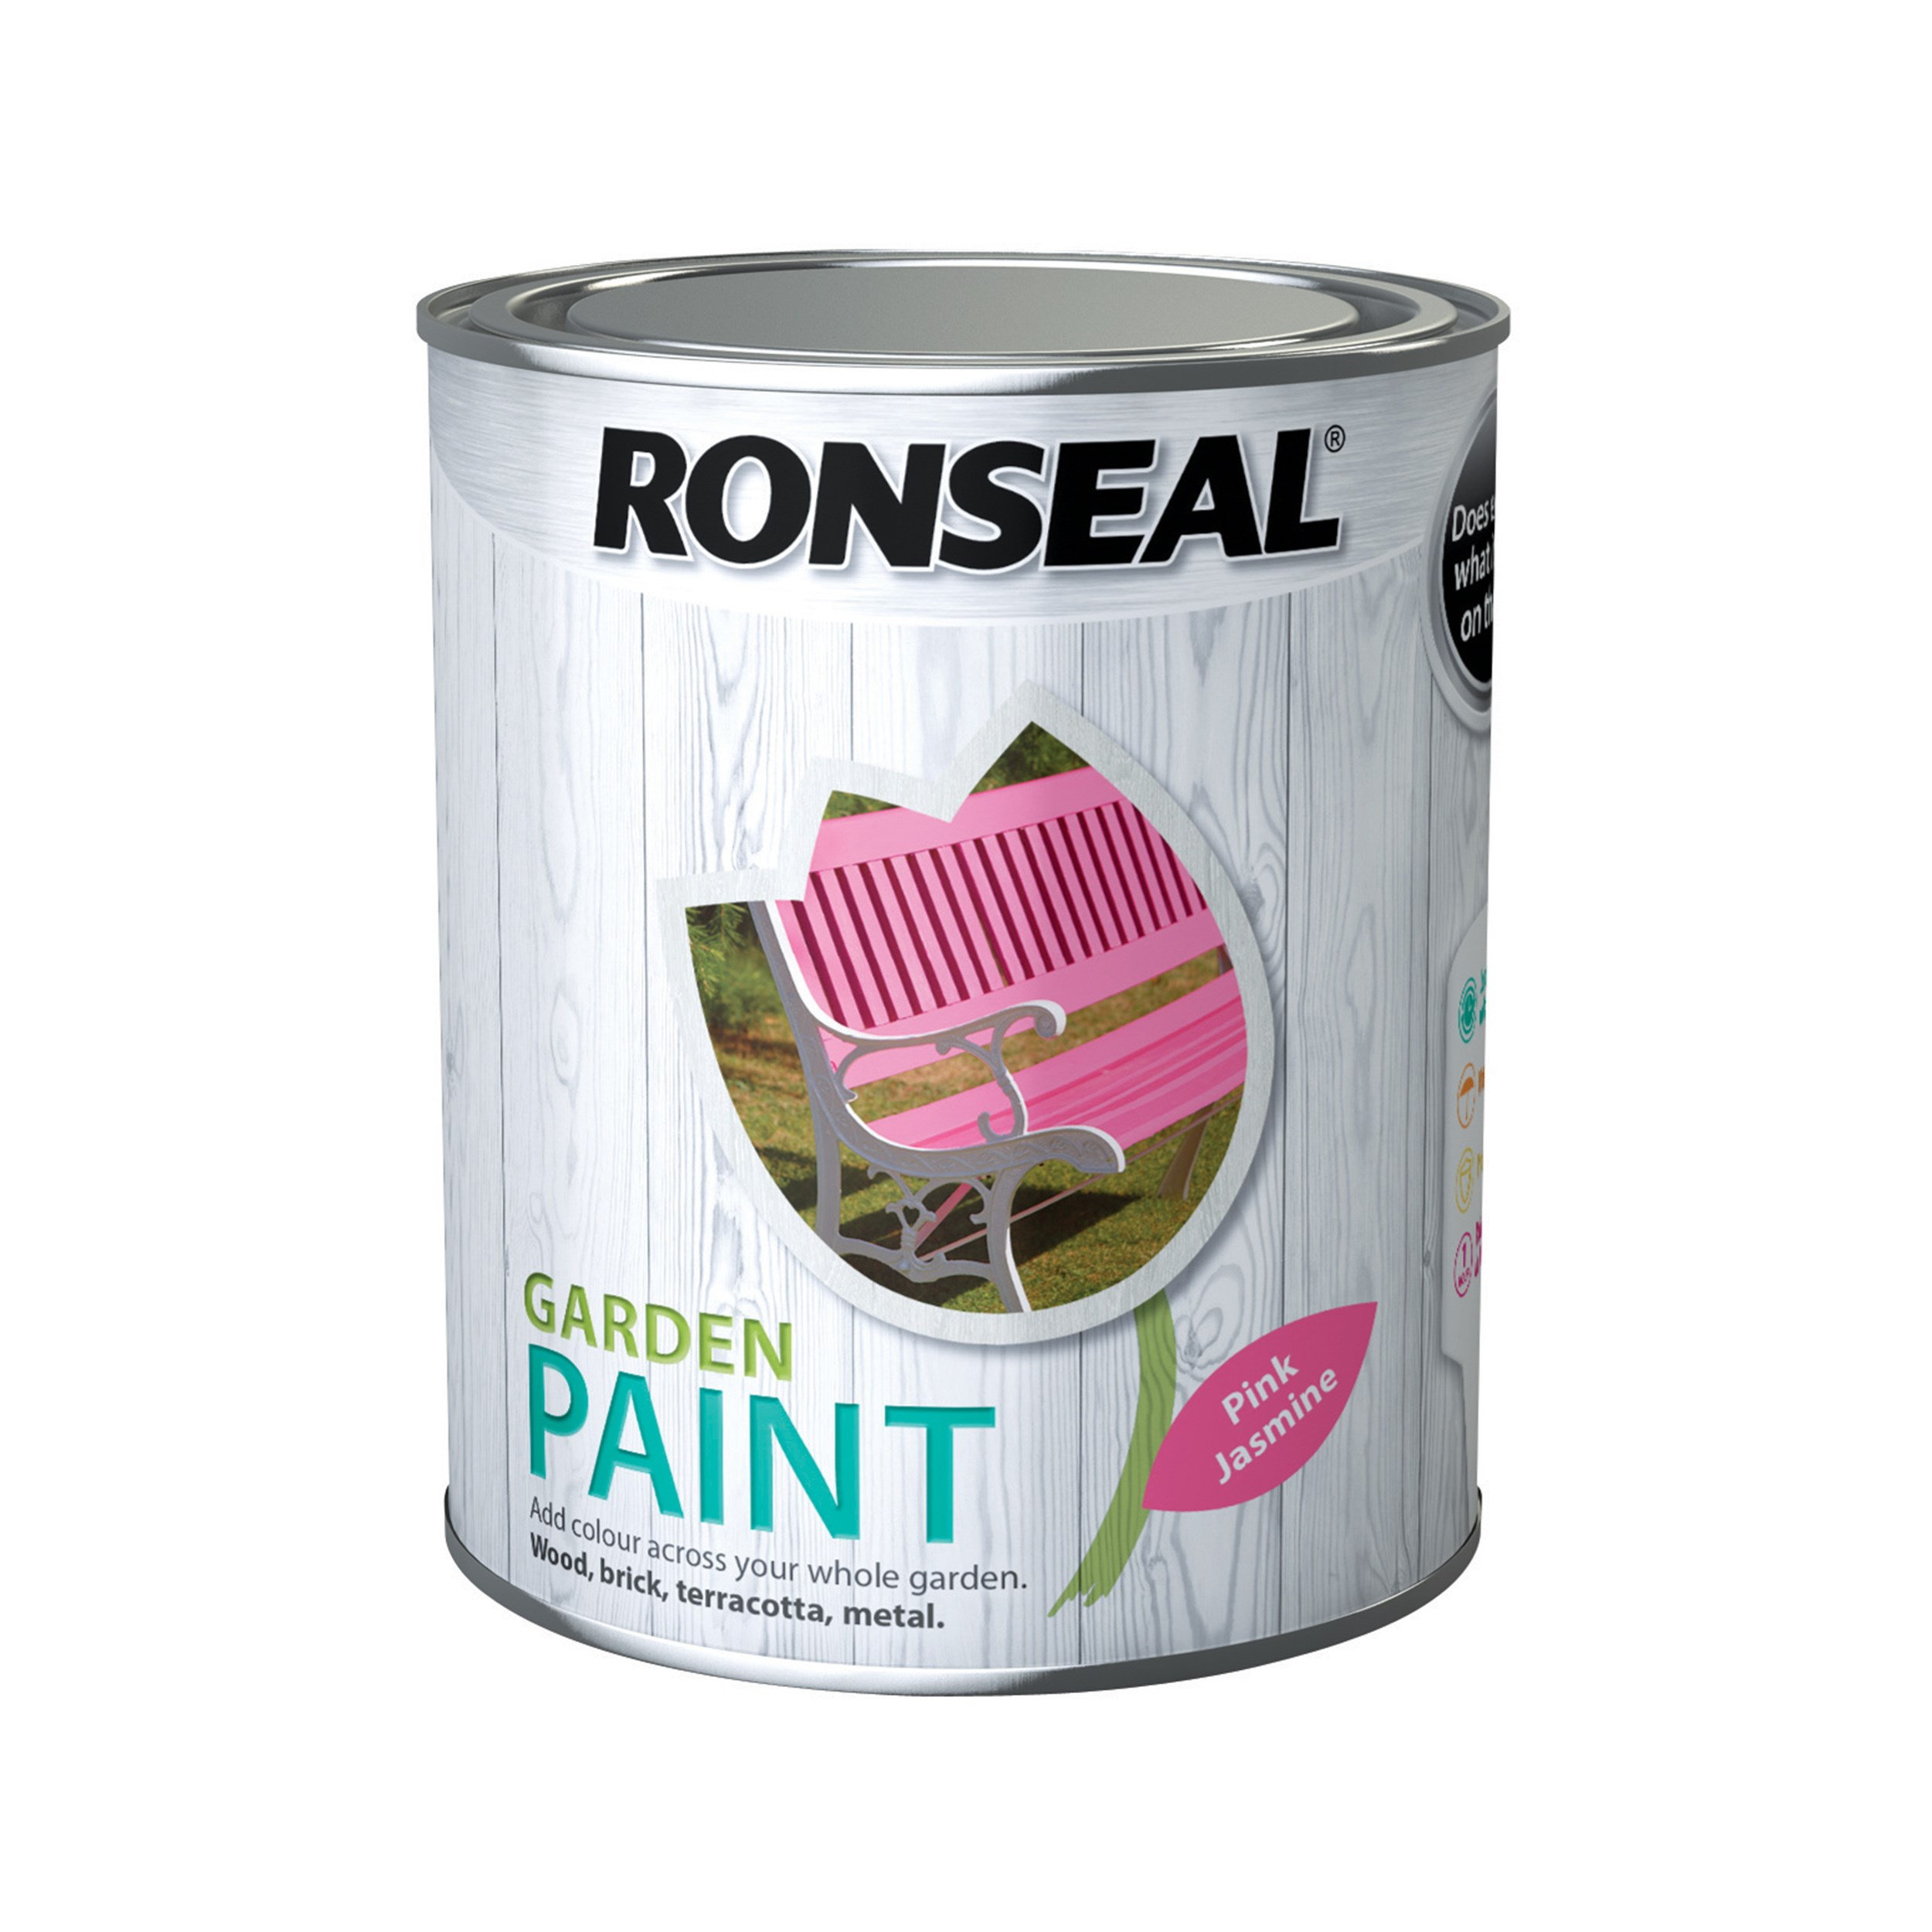 Ronseal chalky furniture paint ronseal - Ronseal Chalky Furniture Paint Ronseal 30